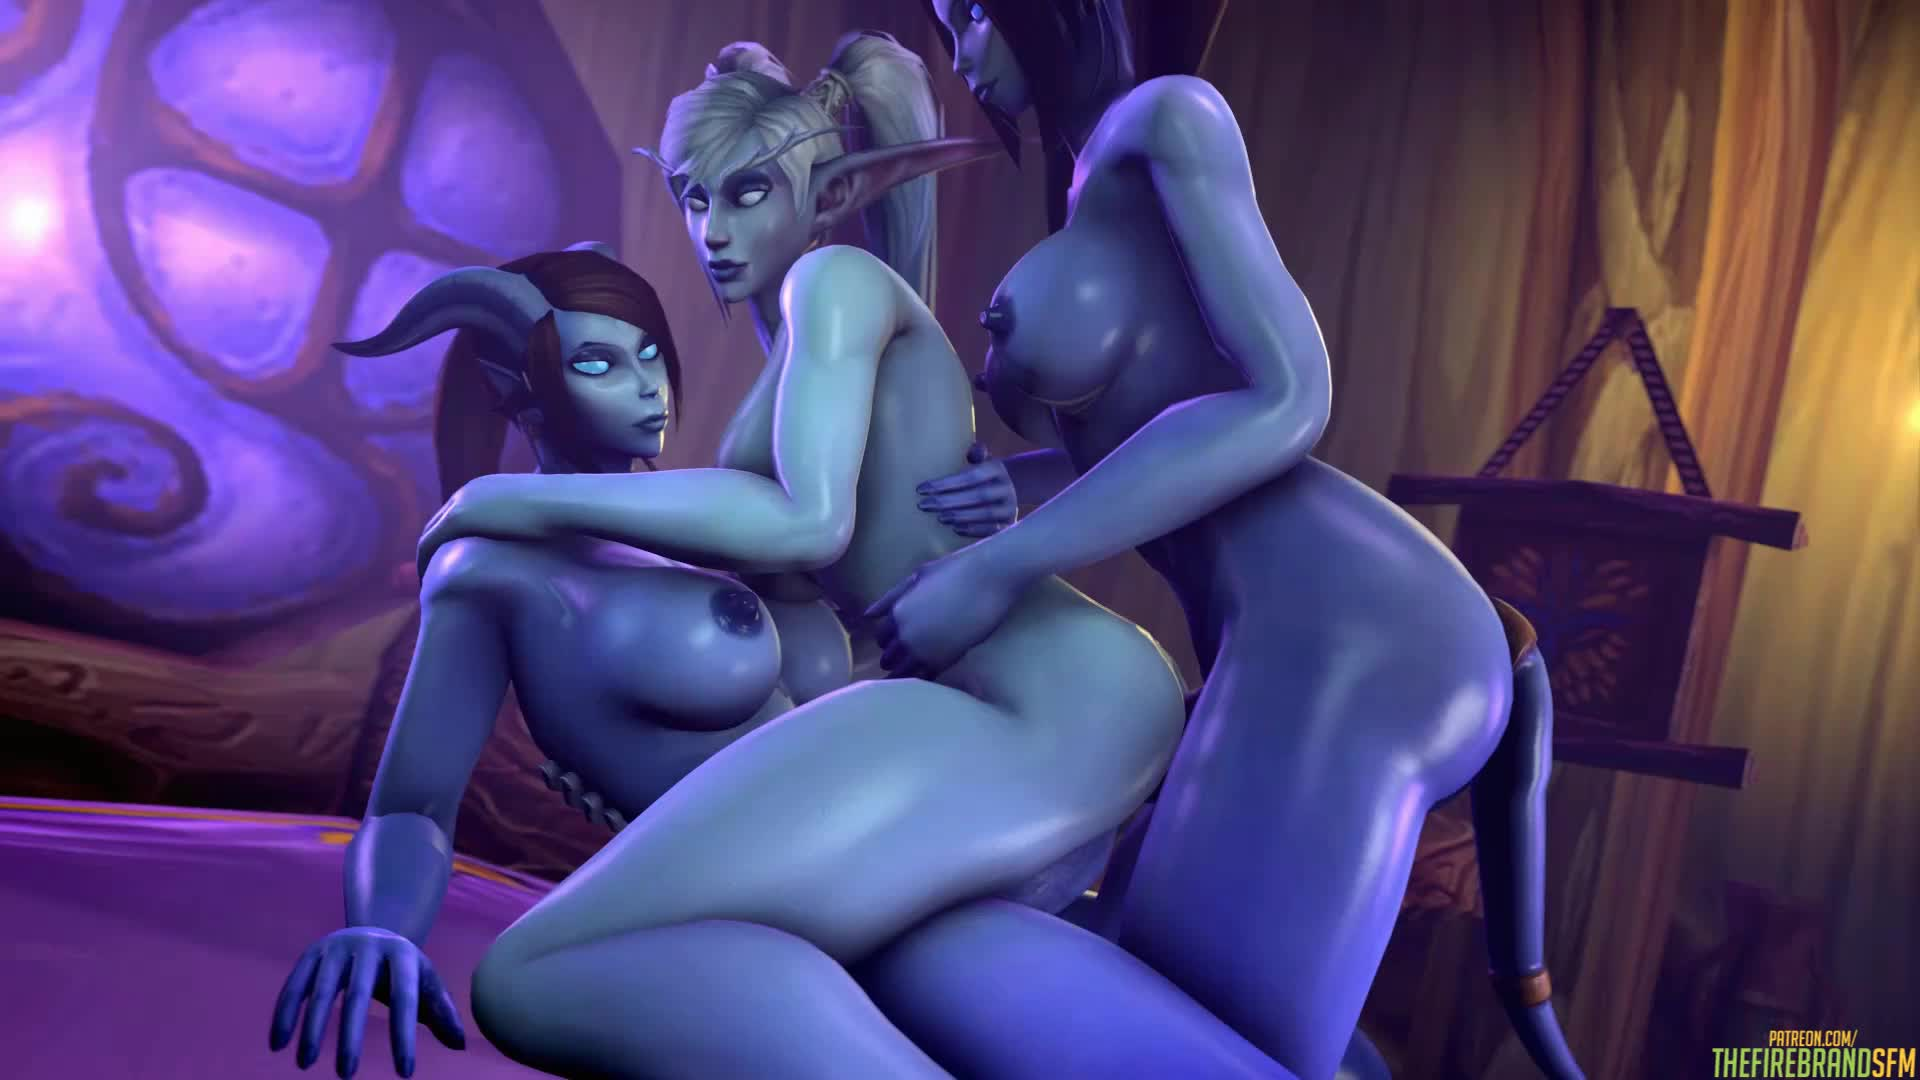 Night elf 3d hentai video hentai streaming